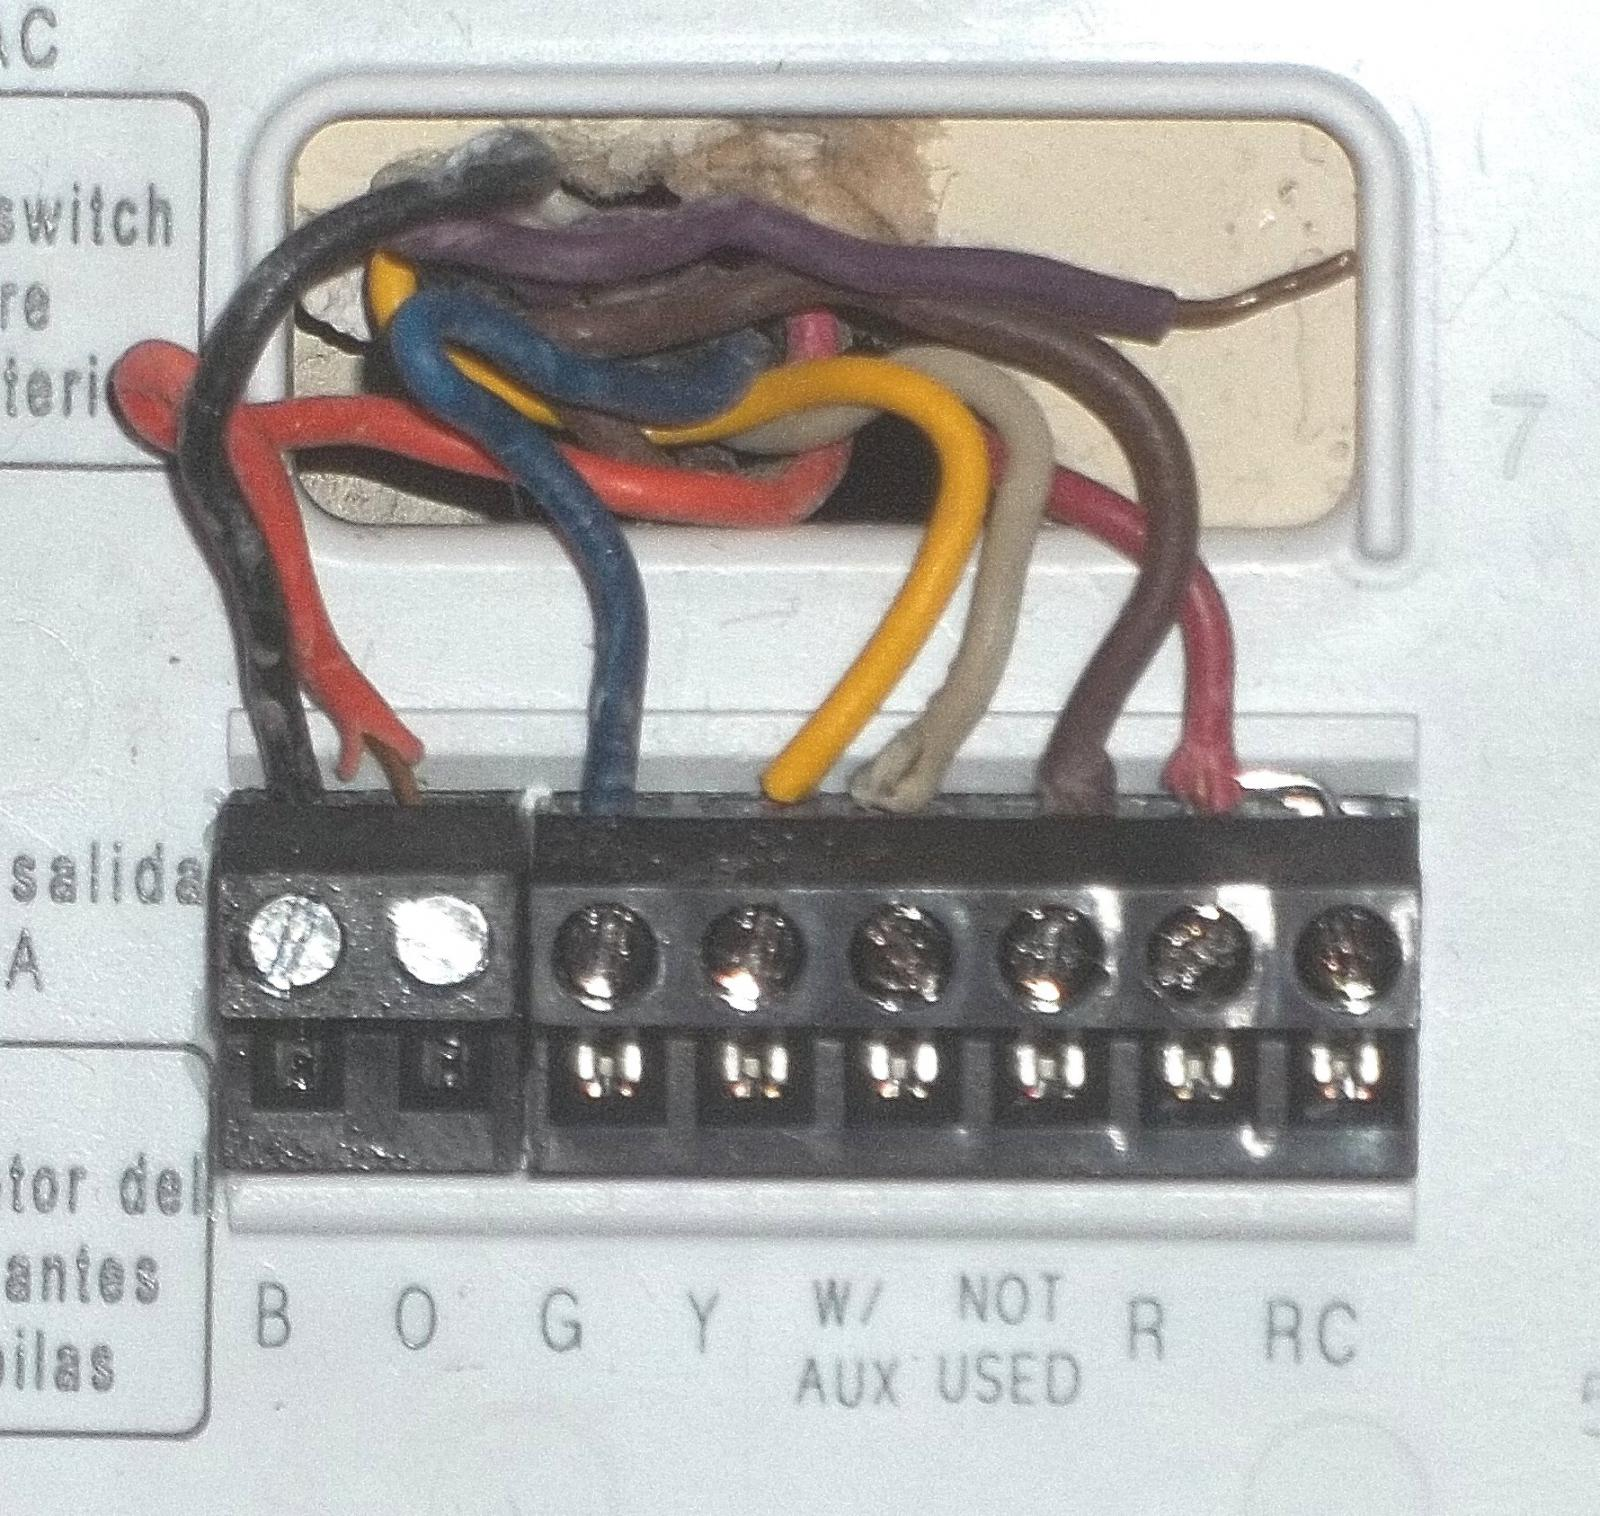 Thermostat wiring help - Tech Support Forum